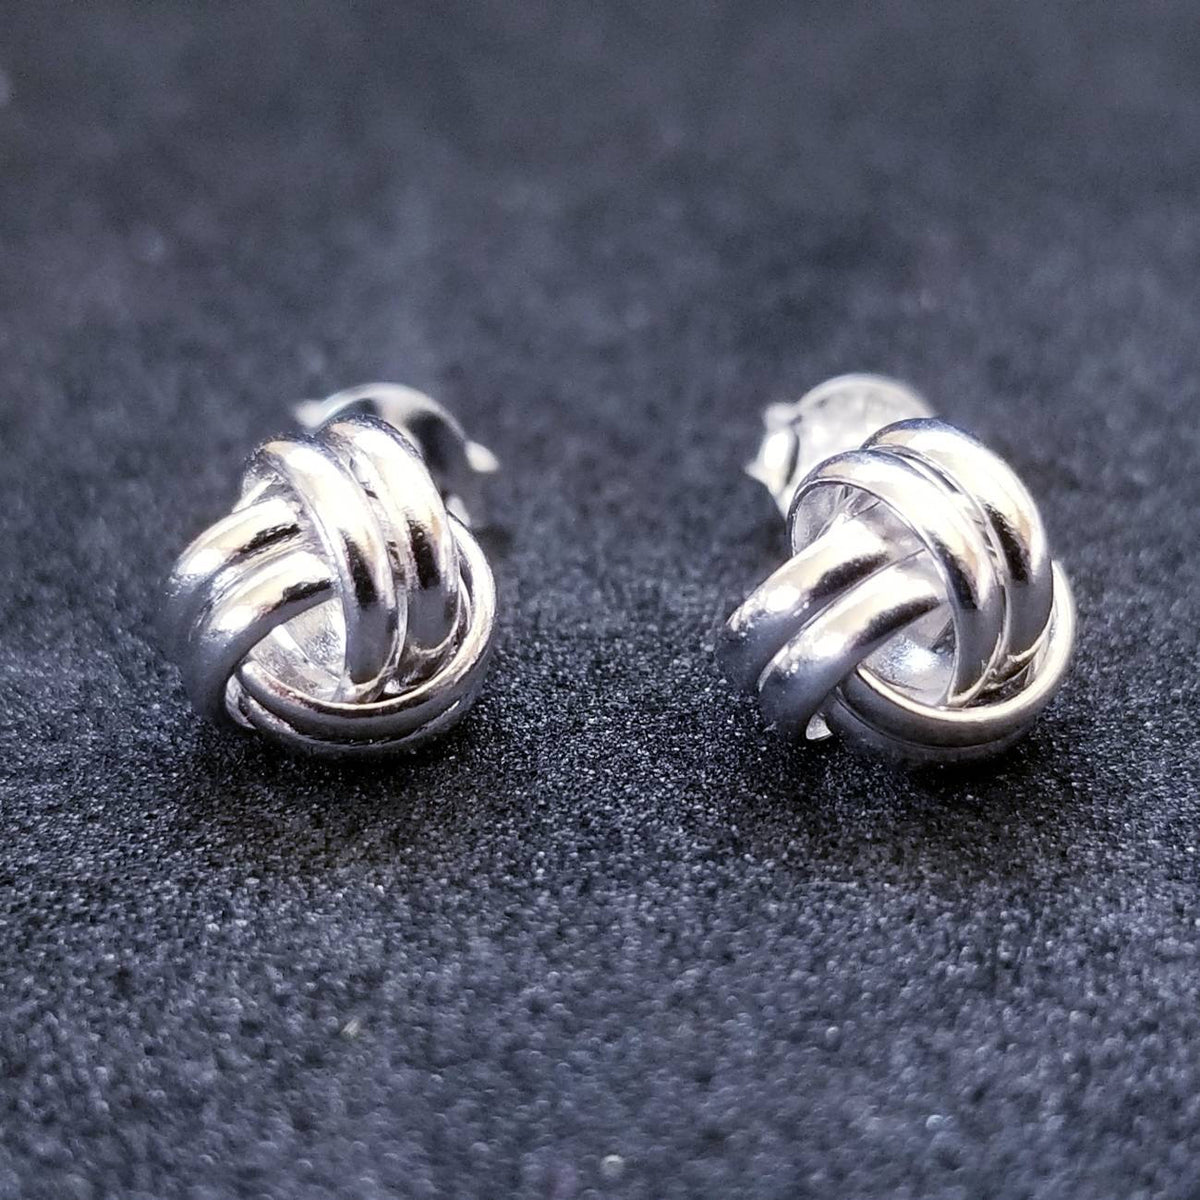 New 14K White Gold on 925 Sterling Silver Knot Earrings